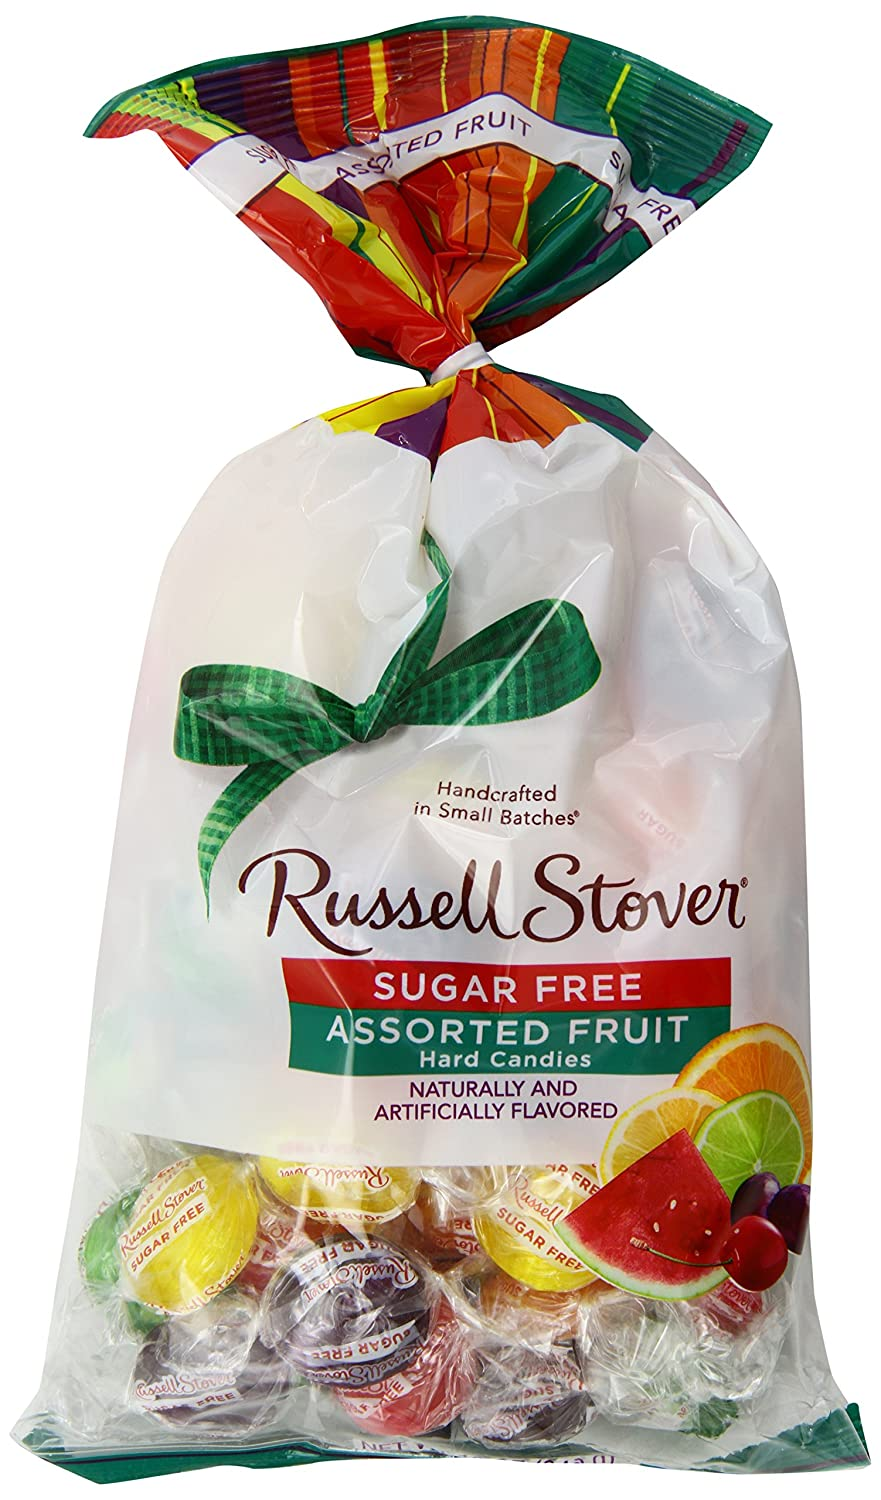 Russell Stover Sugar-Free Hard Candies Assorted Fruit Flavors 12 Ounce Bags (Pack of 3) Sugar-Free Candy, Assorted Hard Candy Bag, Individually Wrapped Sugar-Free Hard Candy Sweetened with Stevia